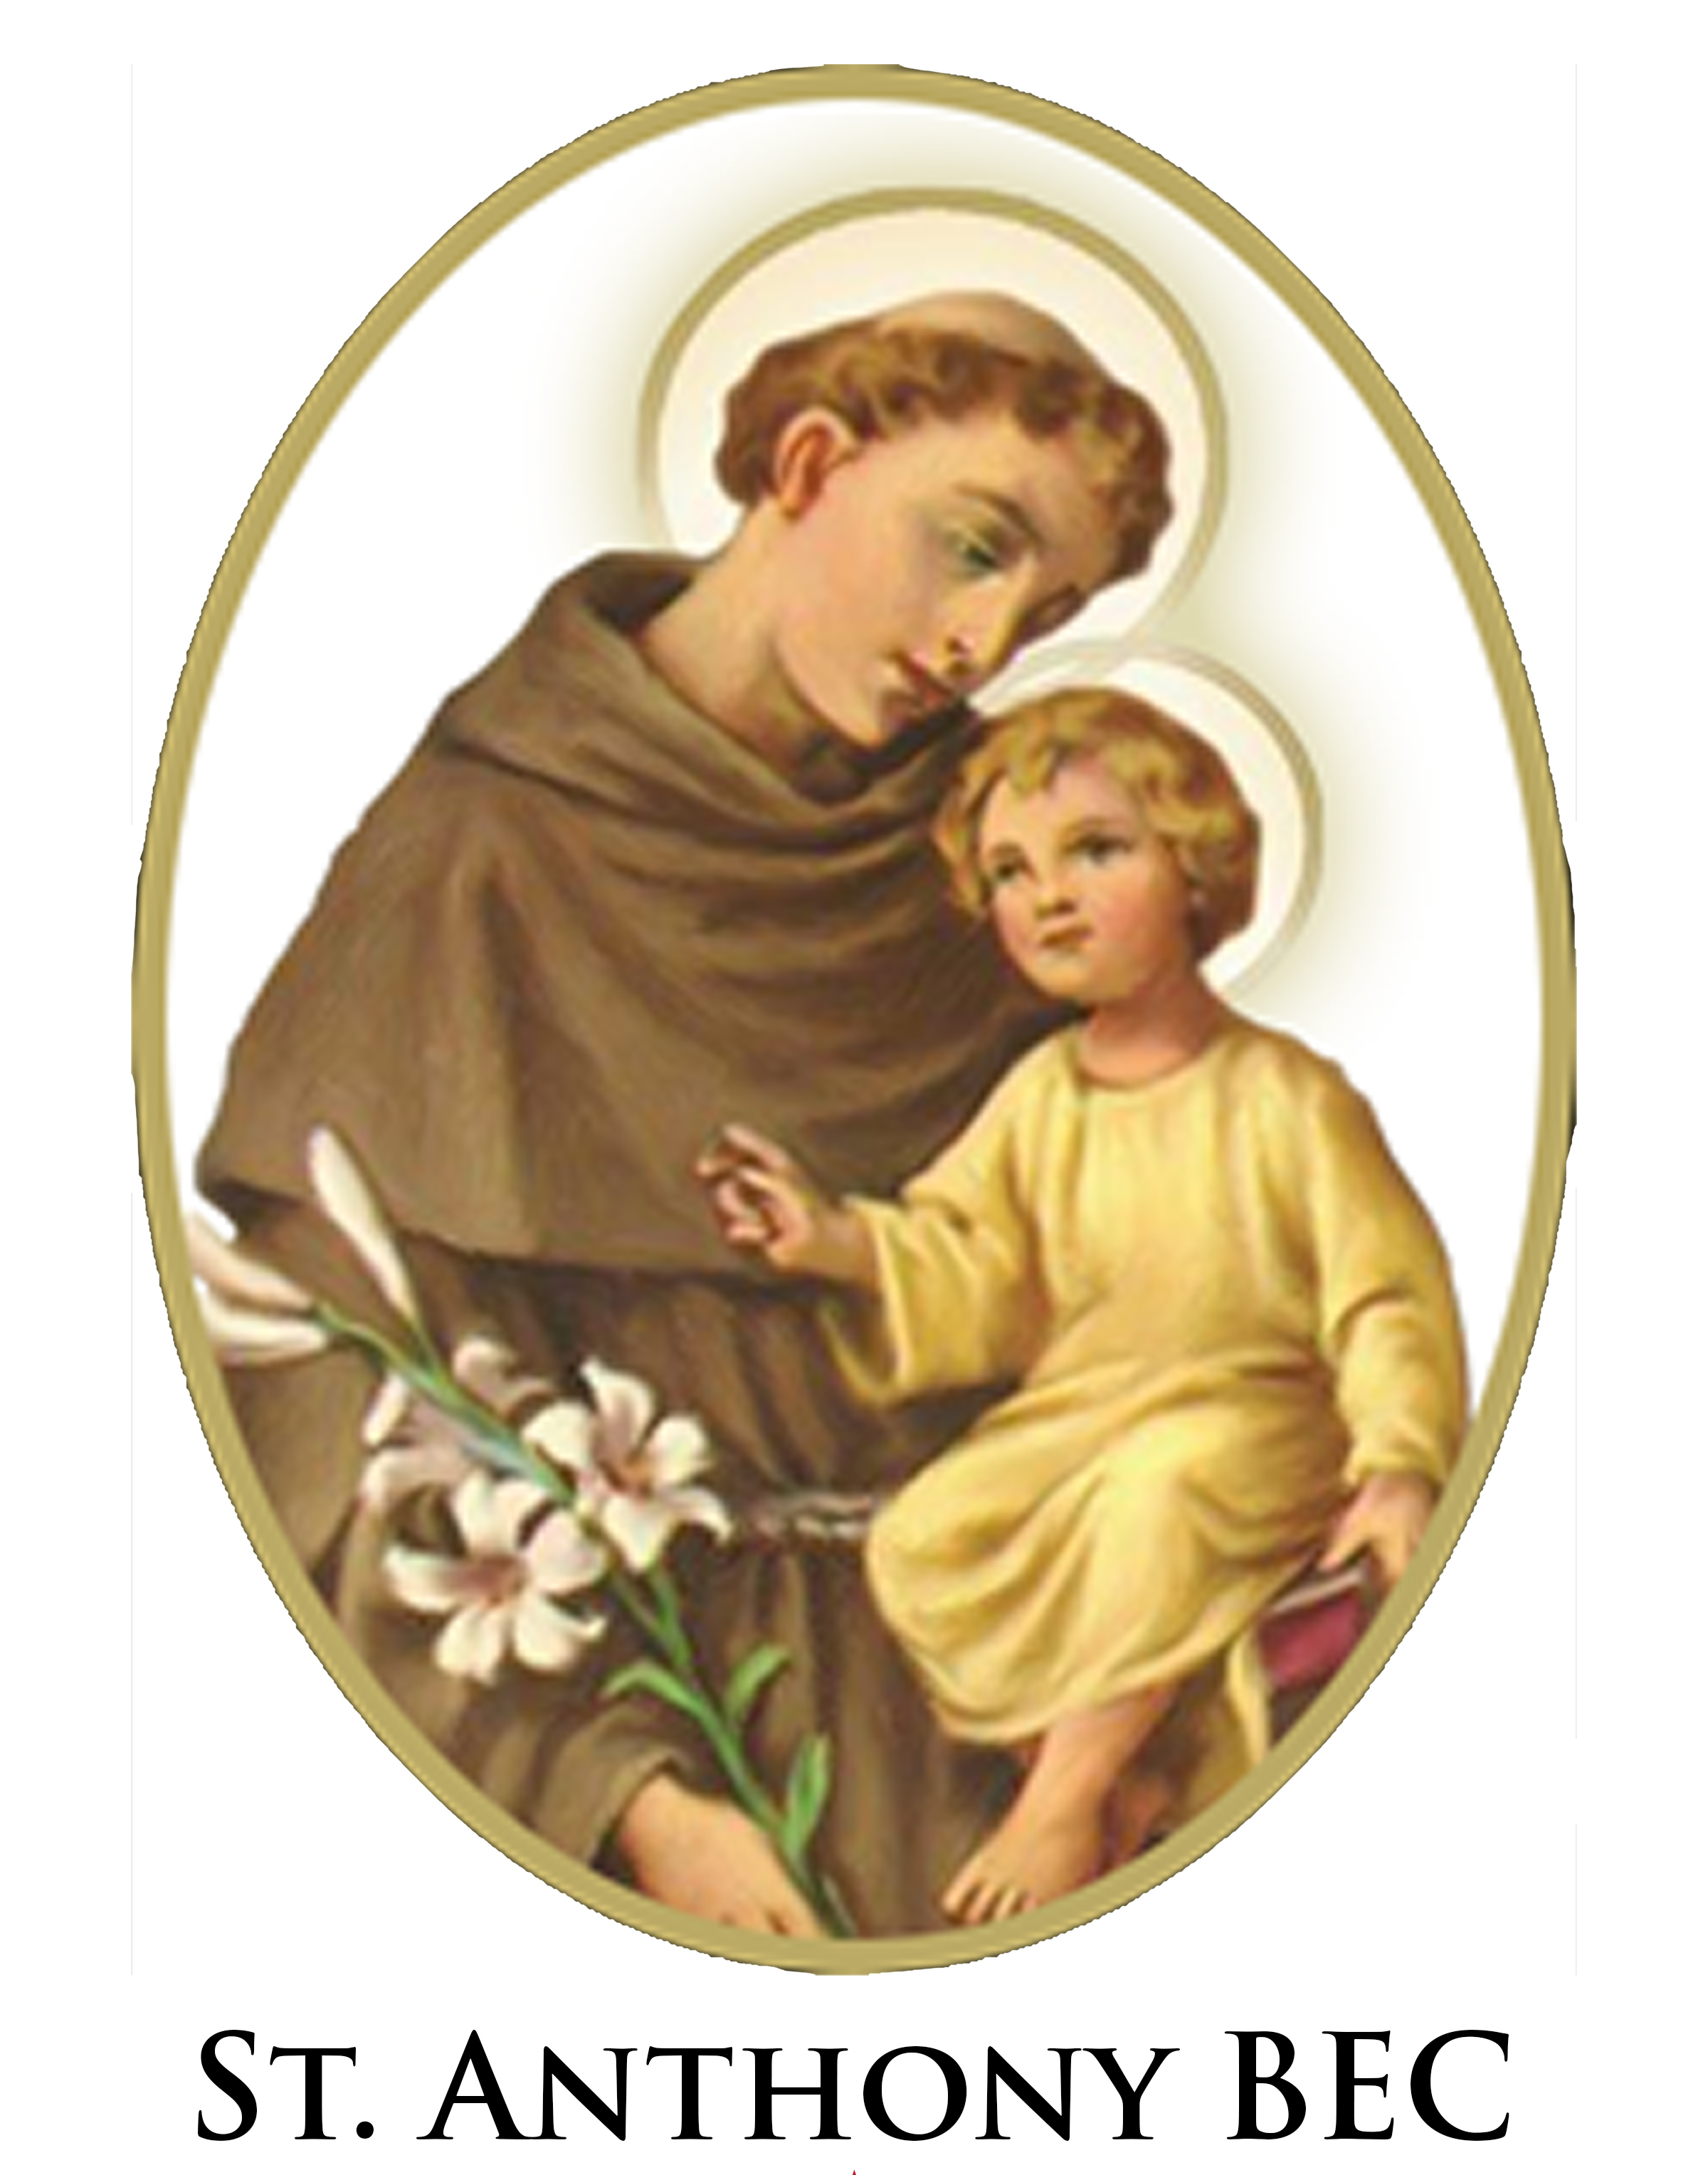 Saint Anthony BEC